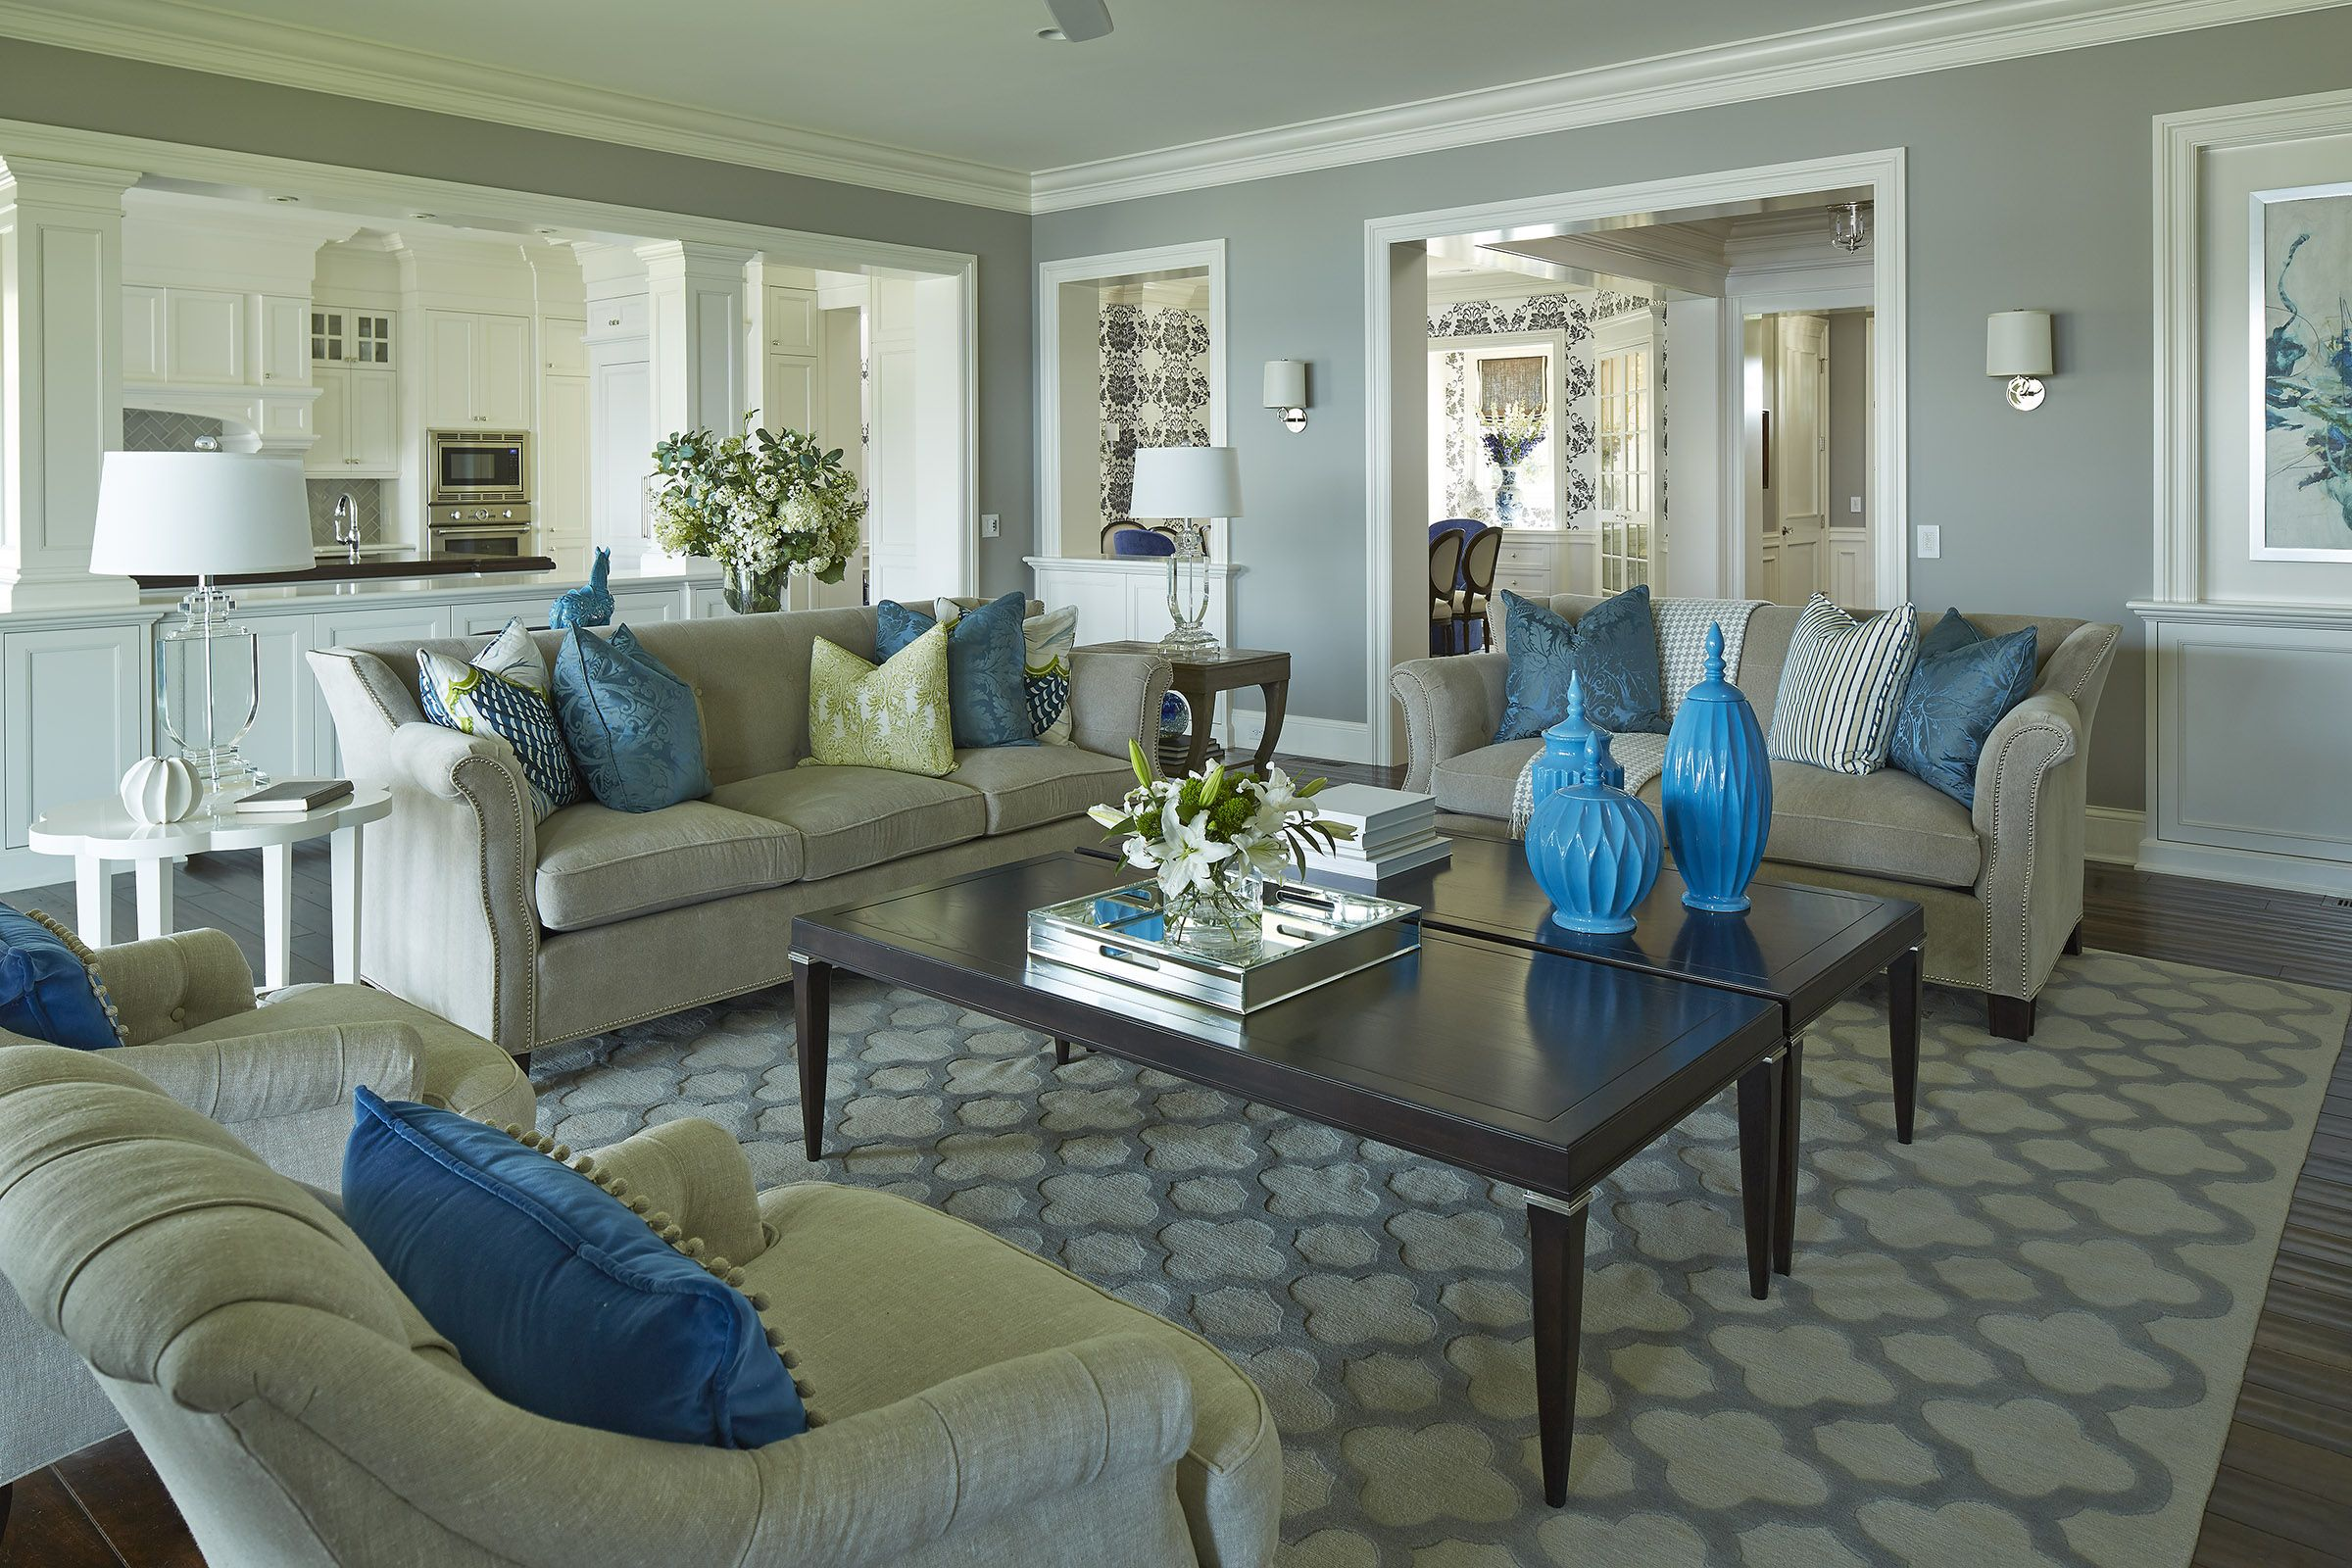 Living Room | Fairhope Avenue residence | For information about ...